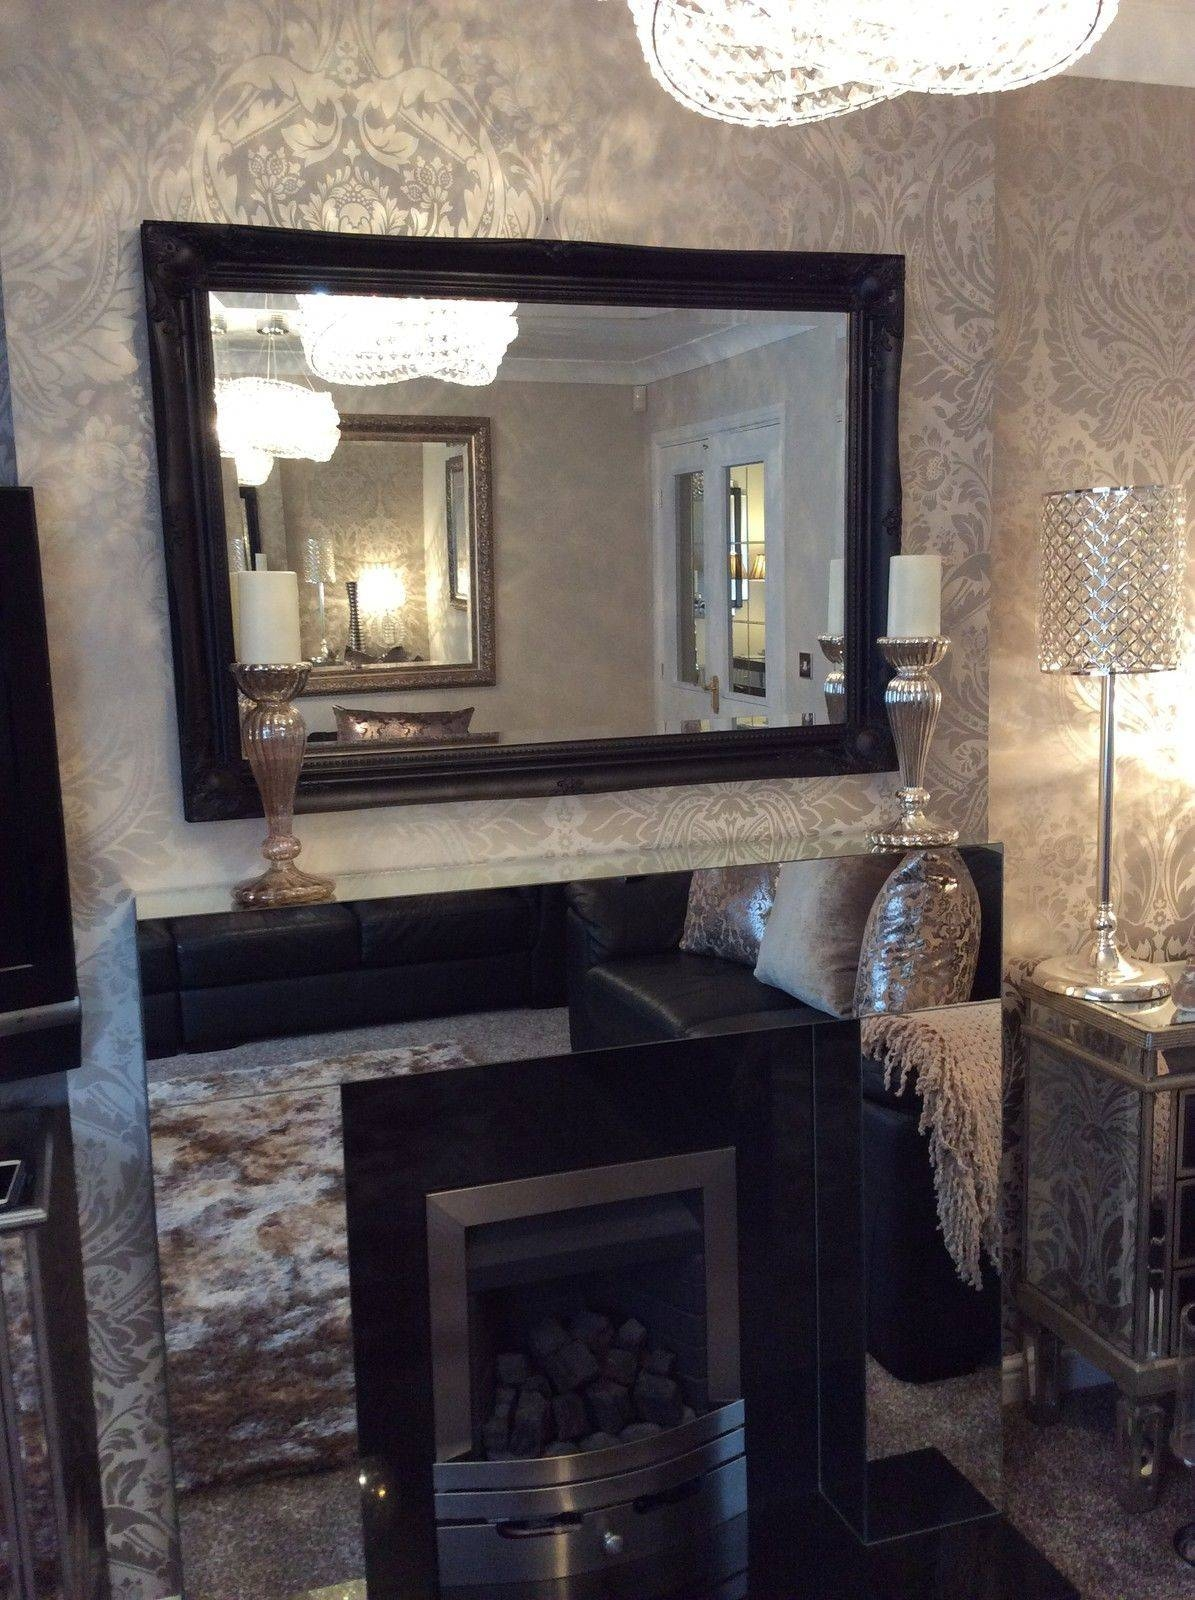 Black Shabby Chic Framed Ornate Overmantle Wall Mirror – Range Of Regarding Large Black Ornate Mirrors (View 7 of 15)